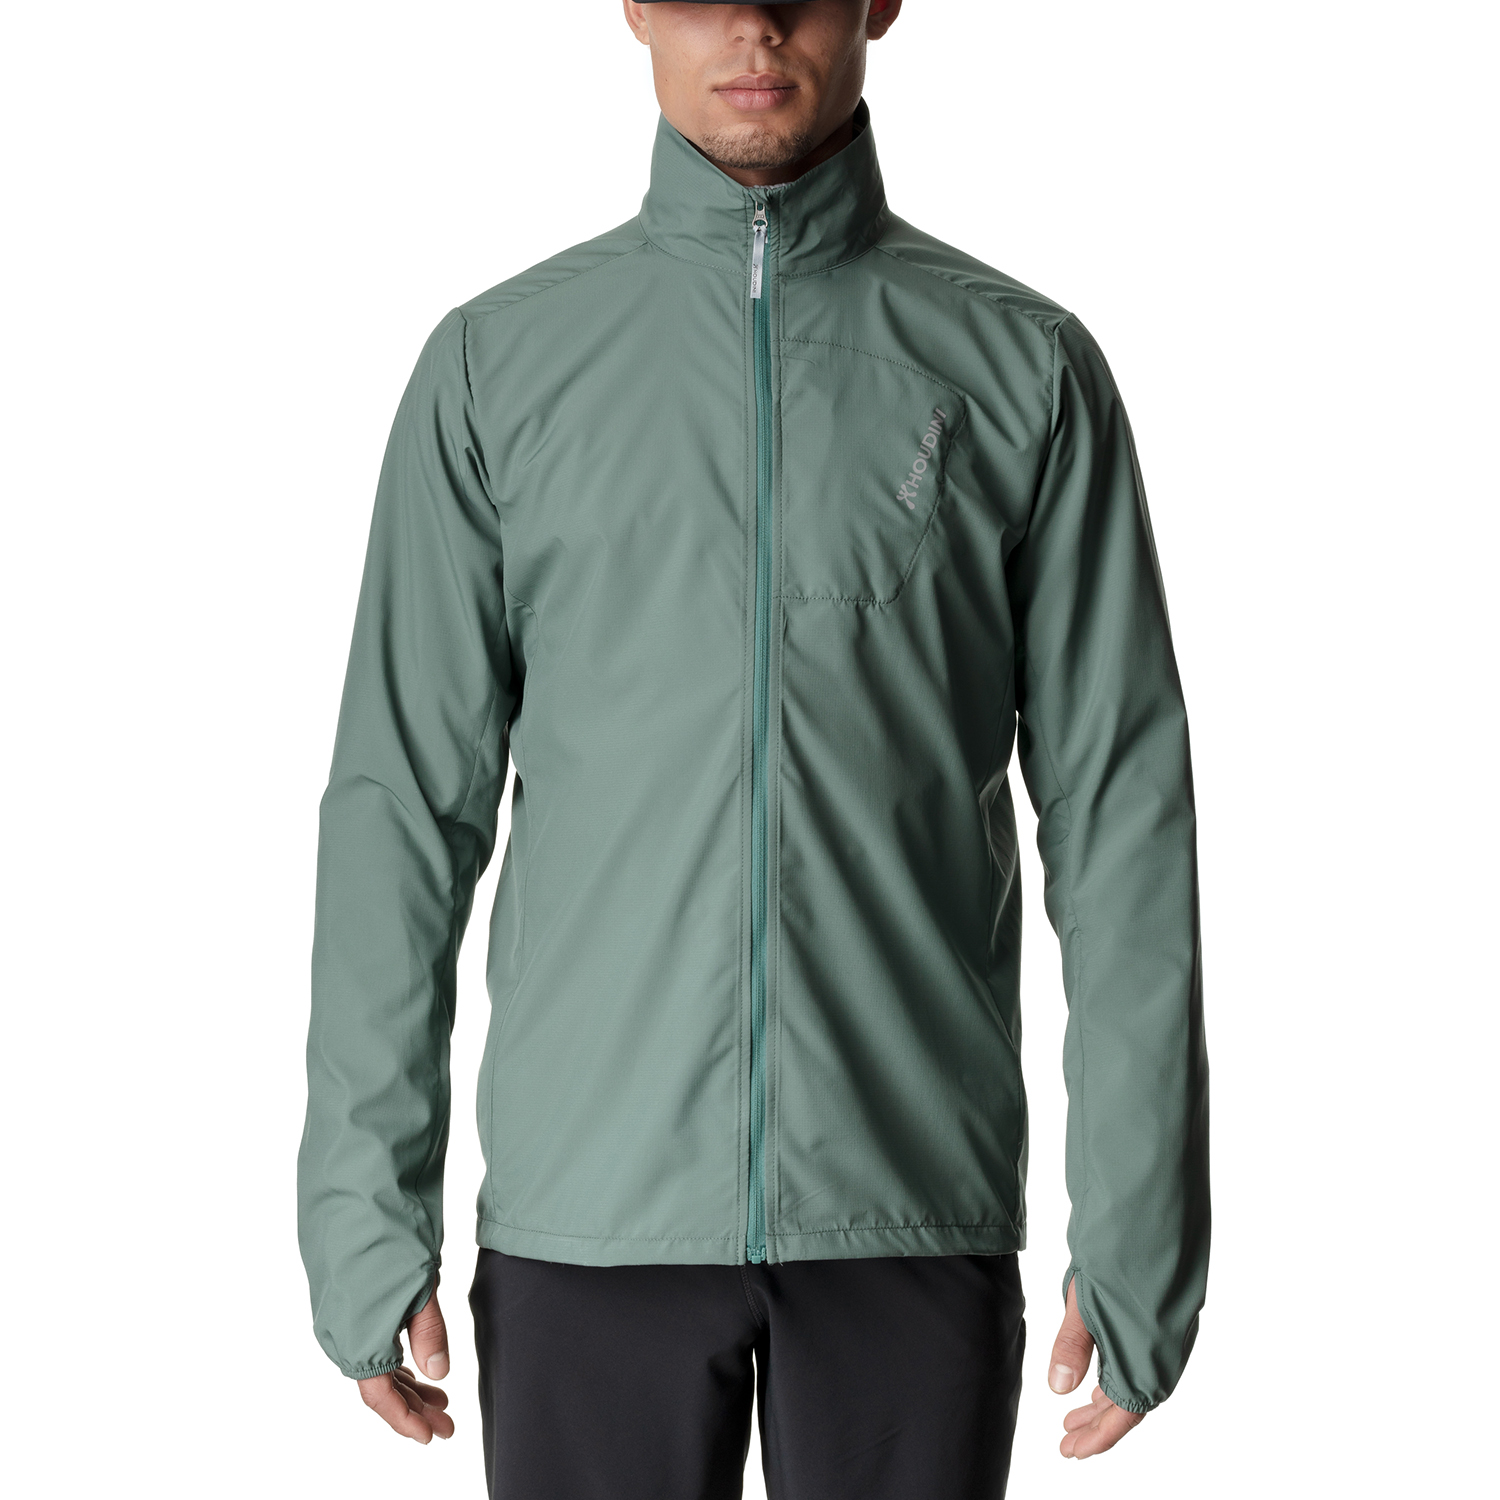 M's Air 2 Air Wind Jacket